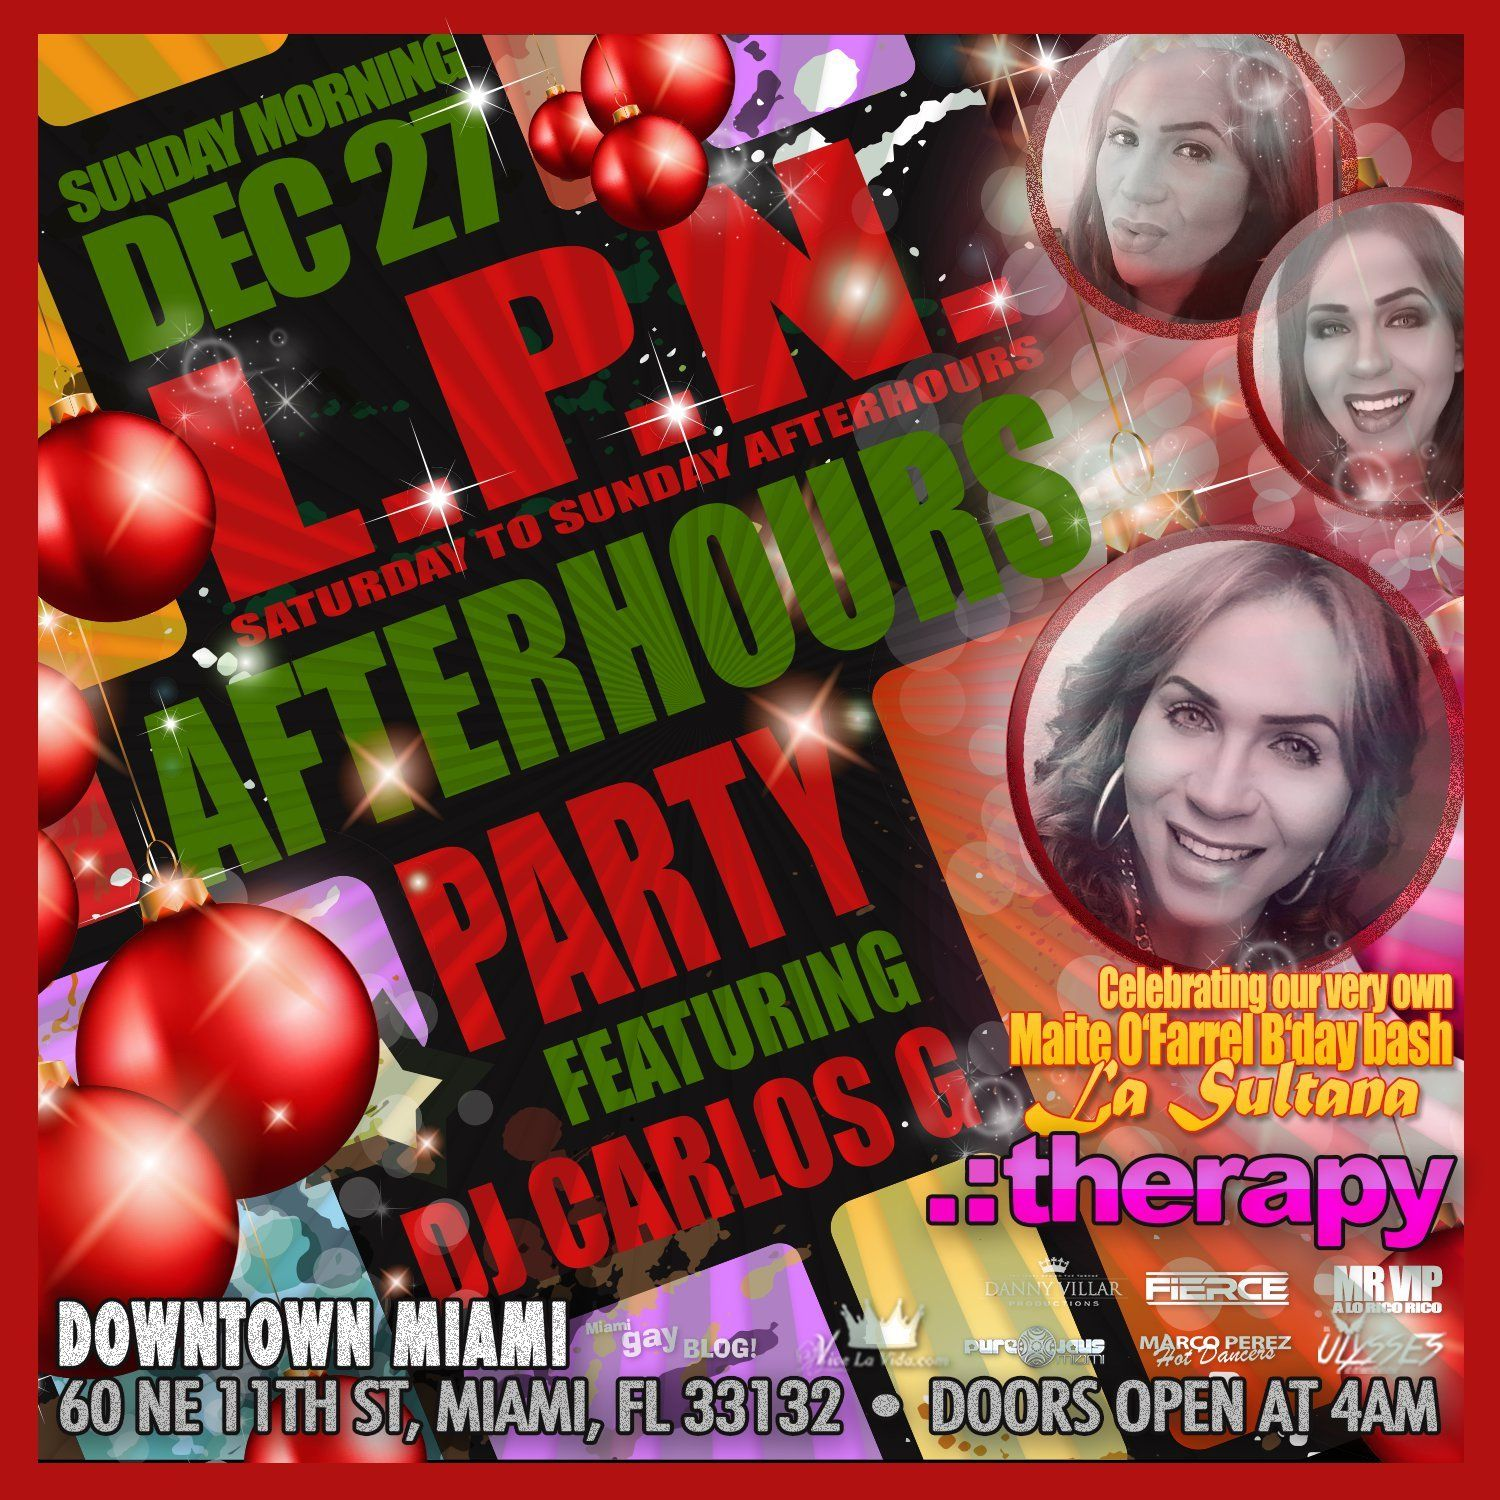 """Every Saturday to Sunday Morning!!! La Puta Nota Afterhours with the Music of our Resident DJ Producer Carlos G!!! This week celebrating Our Very Own Maite O' Farrel """"La Sultana"""" Birthday Bash!!!"""